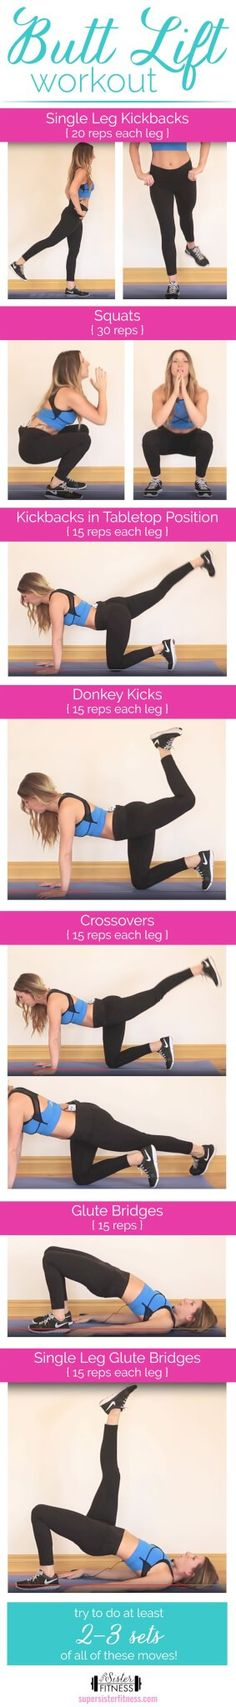 Lazy Girl Workout for legs and butt. Feel the burn!